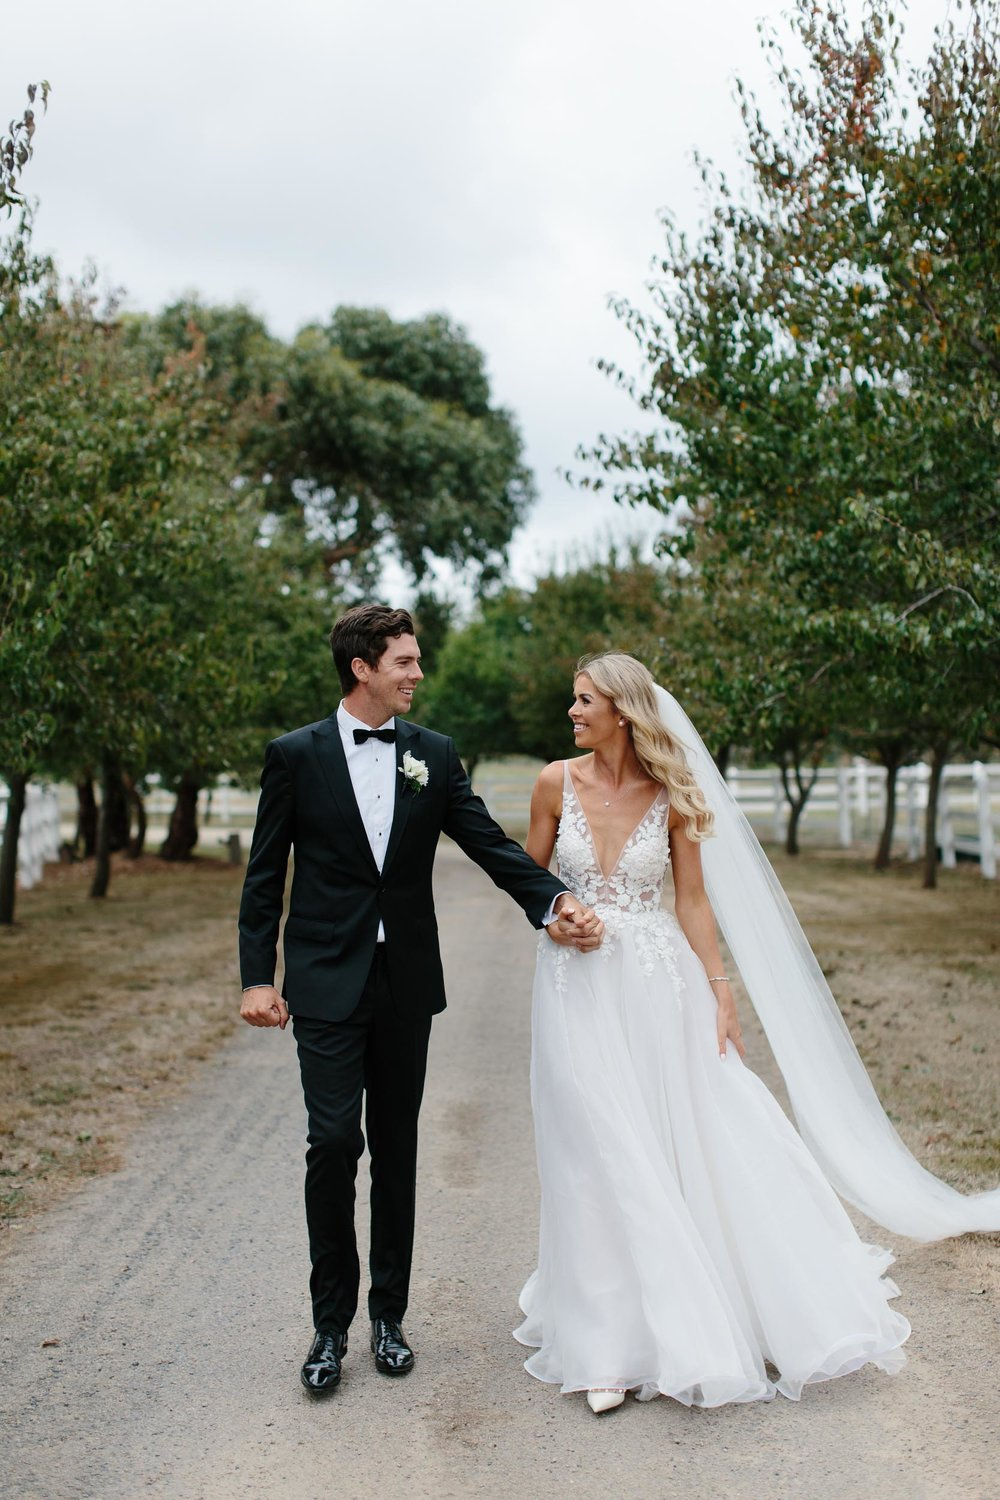 Kas-Richards-Mornington-Peninsula-Private-Property-Wedding-Marianna-Hardwick-Gown-500.jpg